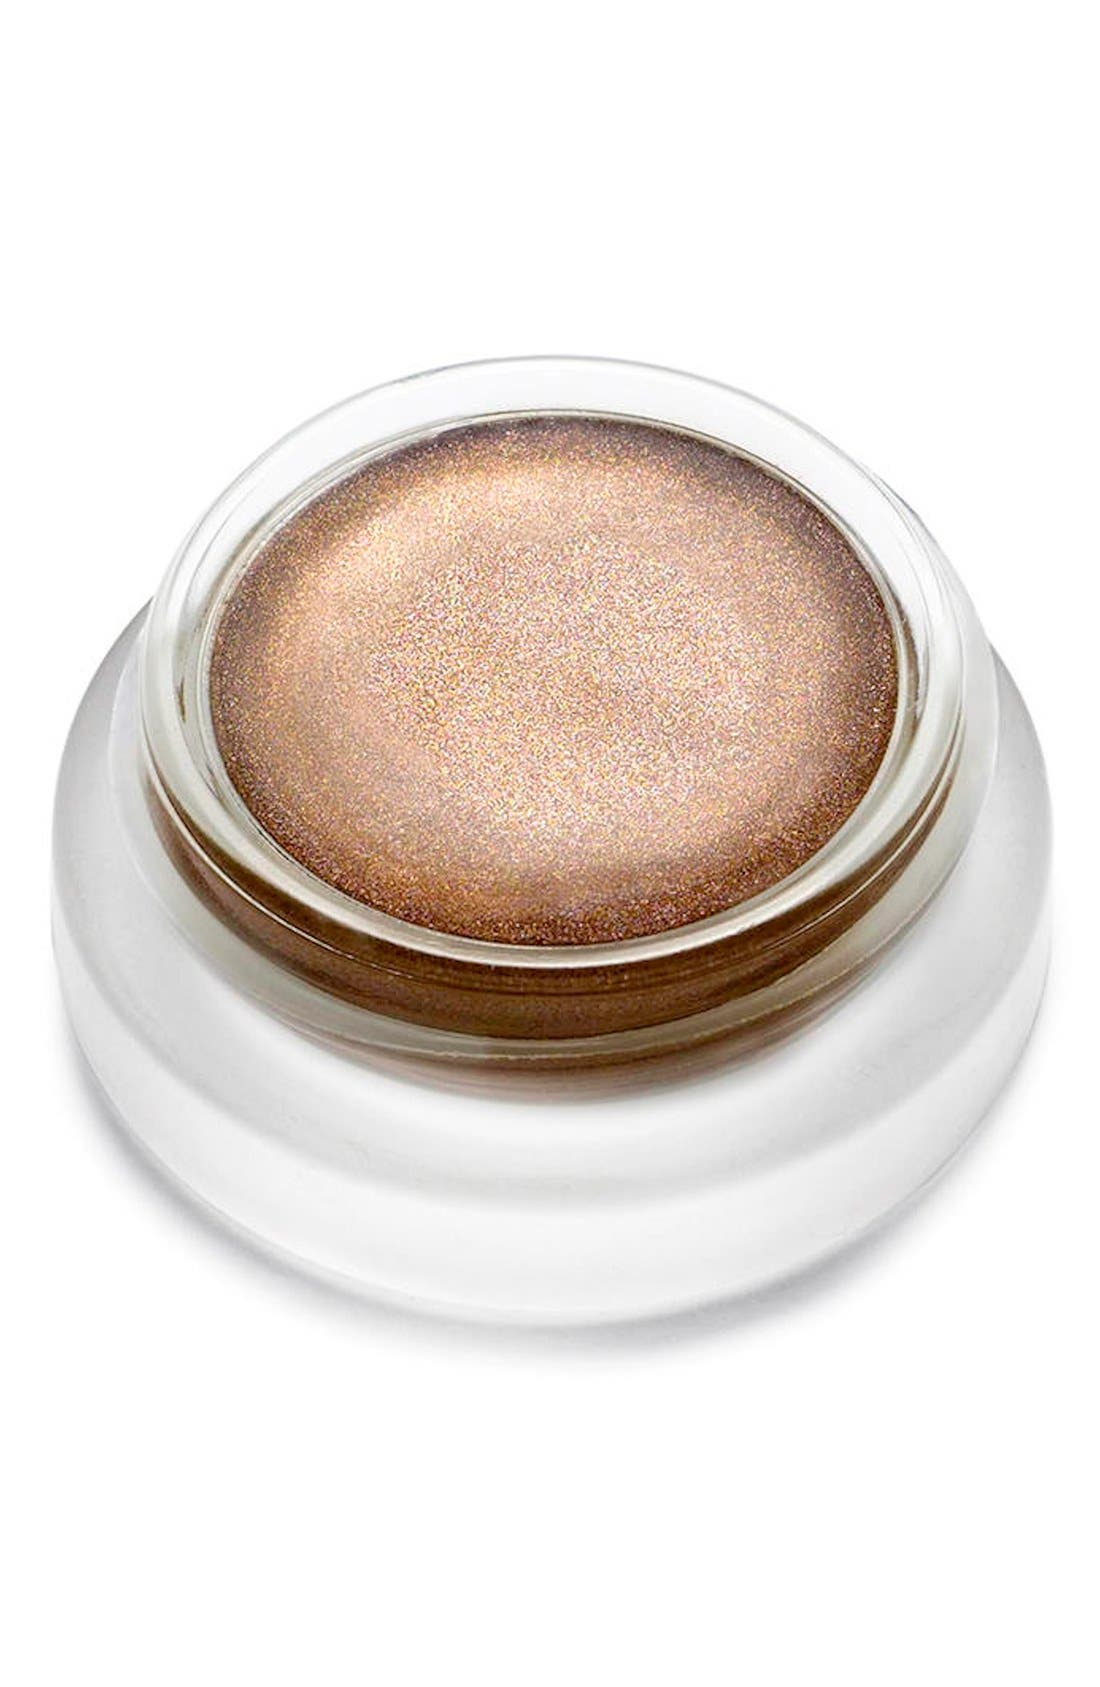 Buriti Bronzer,                             Main thumbnail 1, color,                             NO COLOR